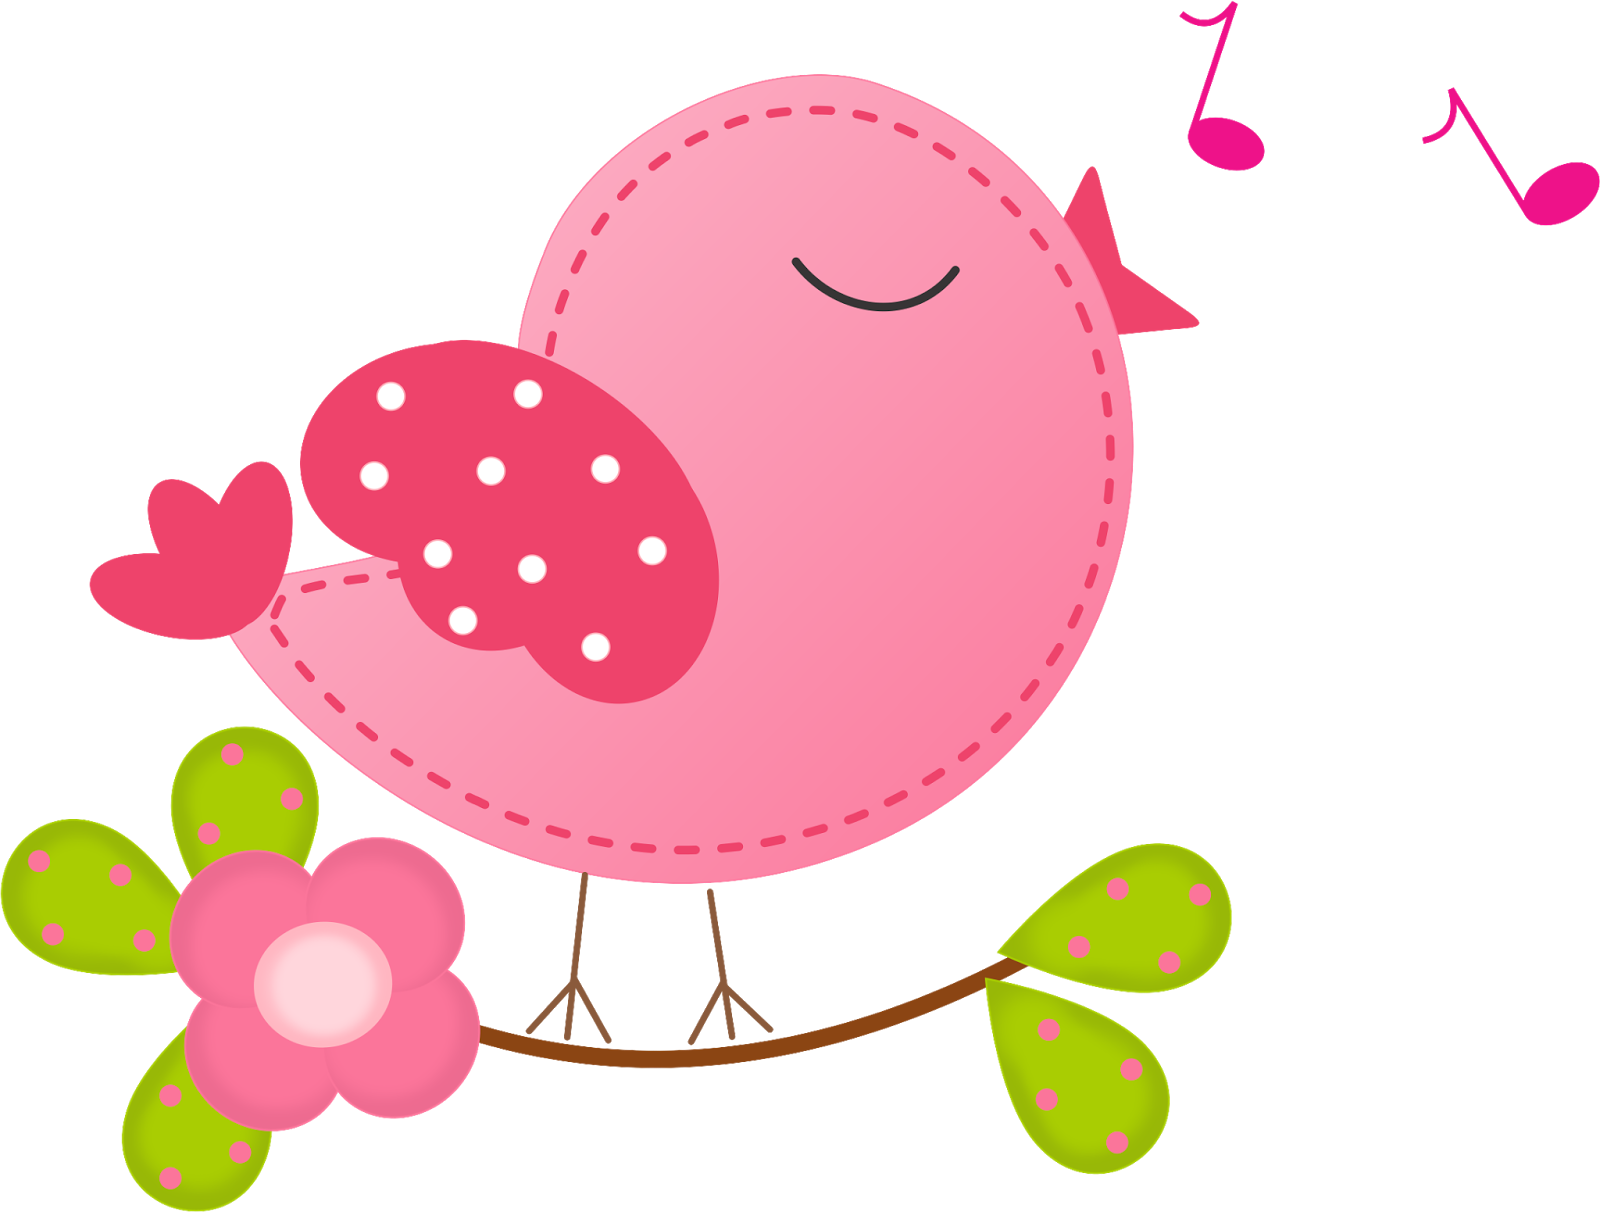 Bello clipart de pajaritos cantando oh my 15 a os for 3 little birds salon